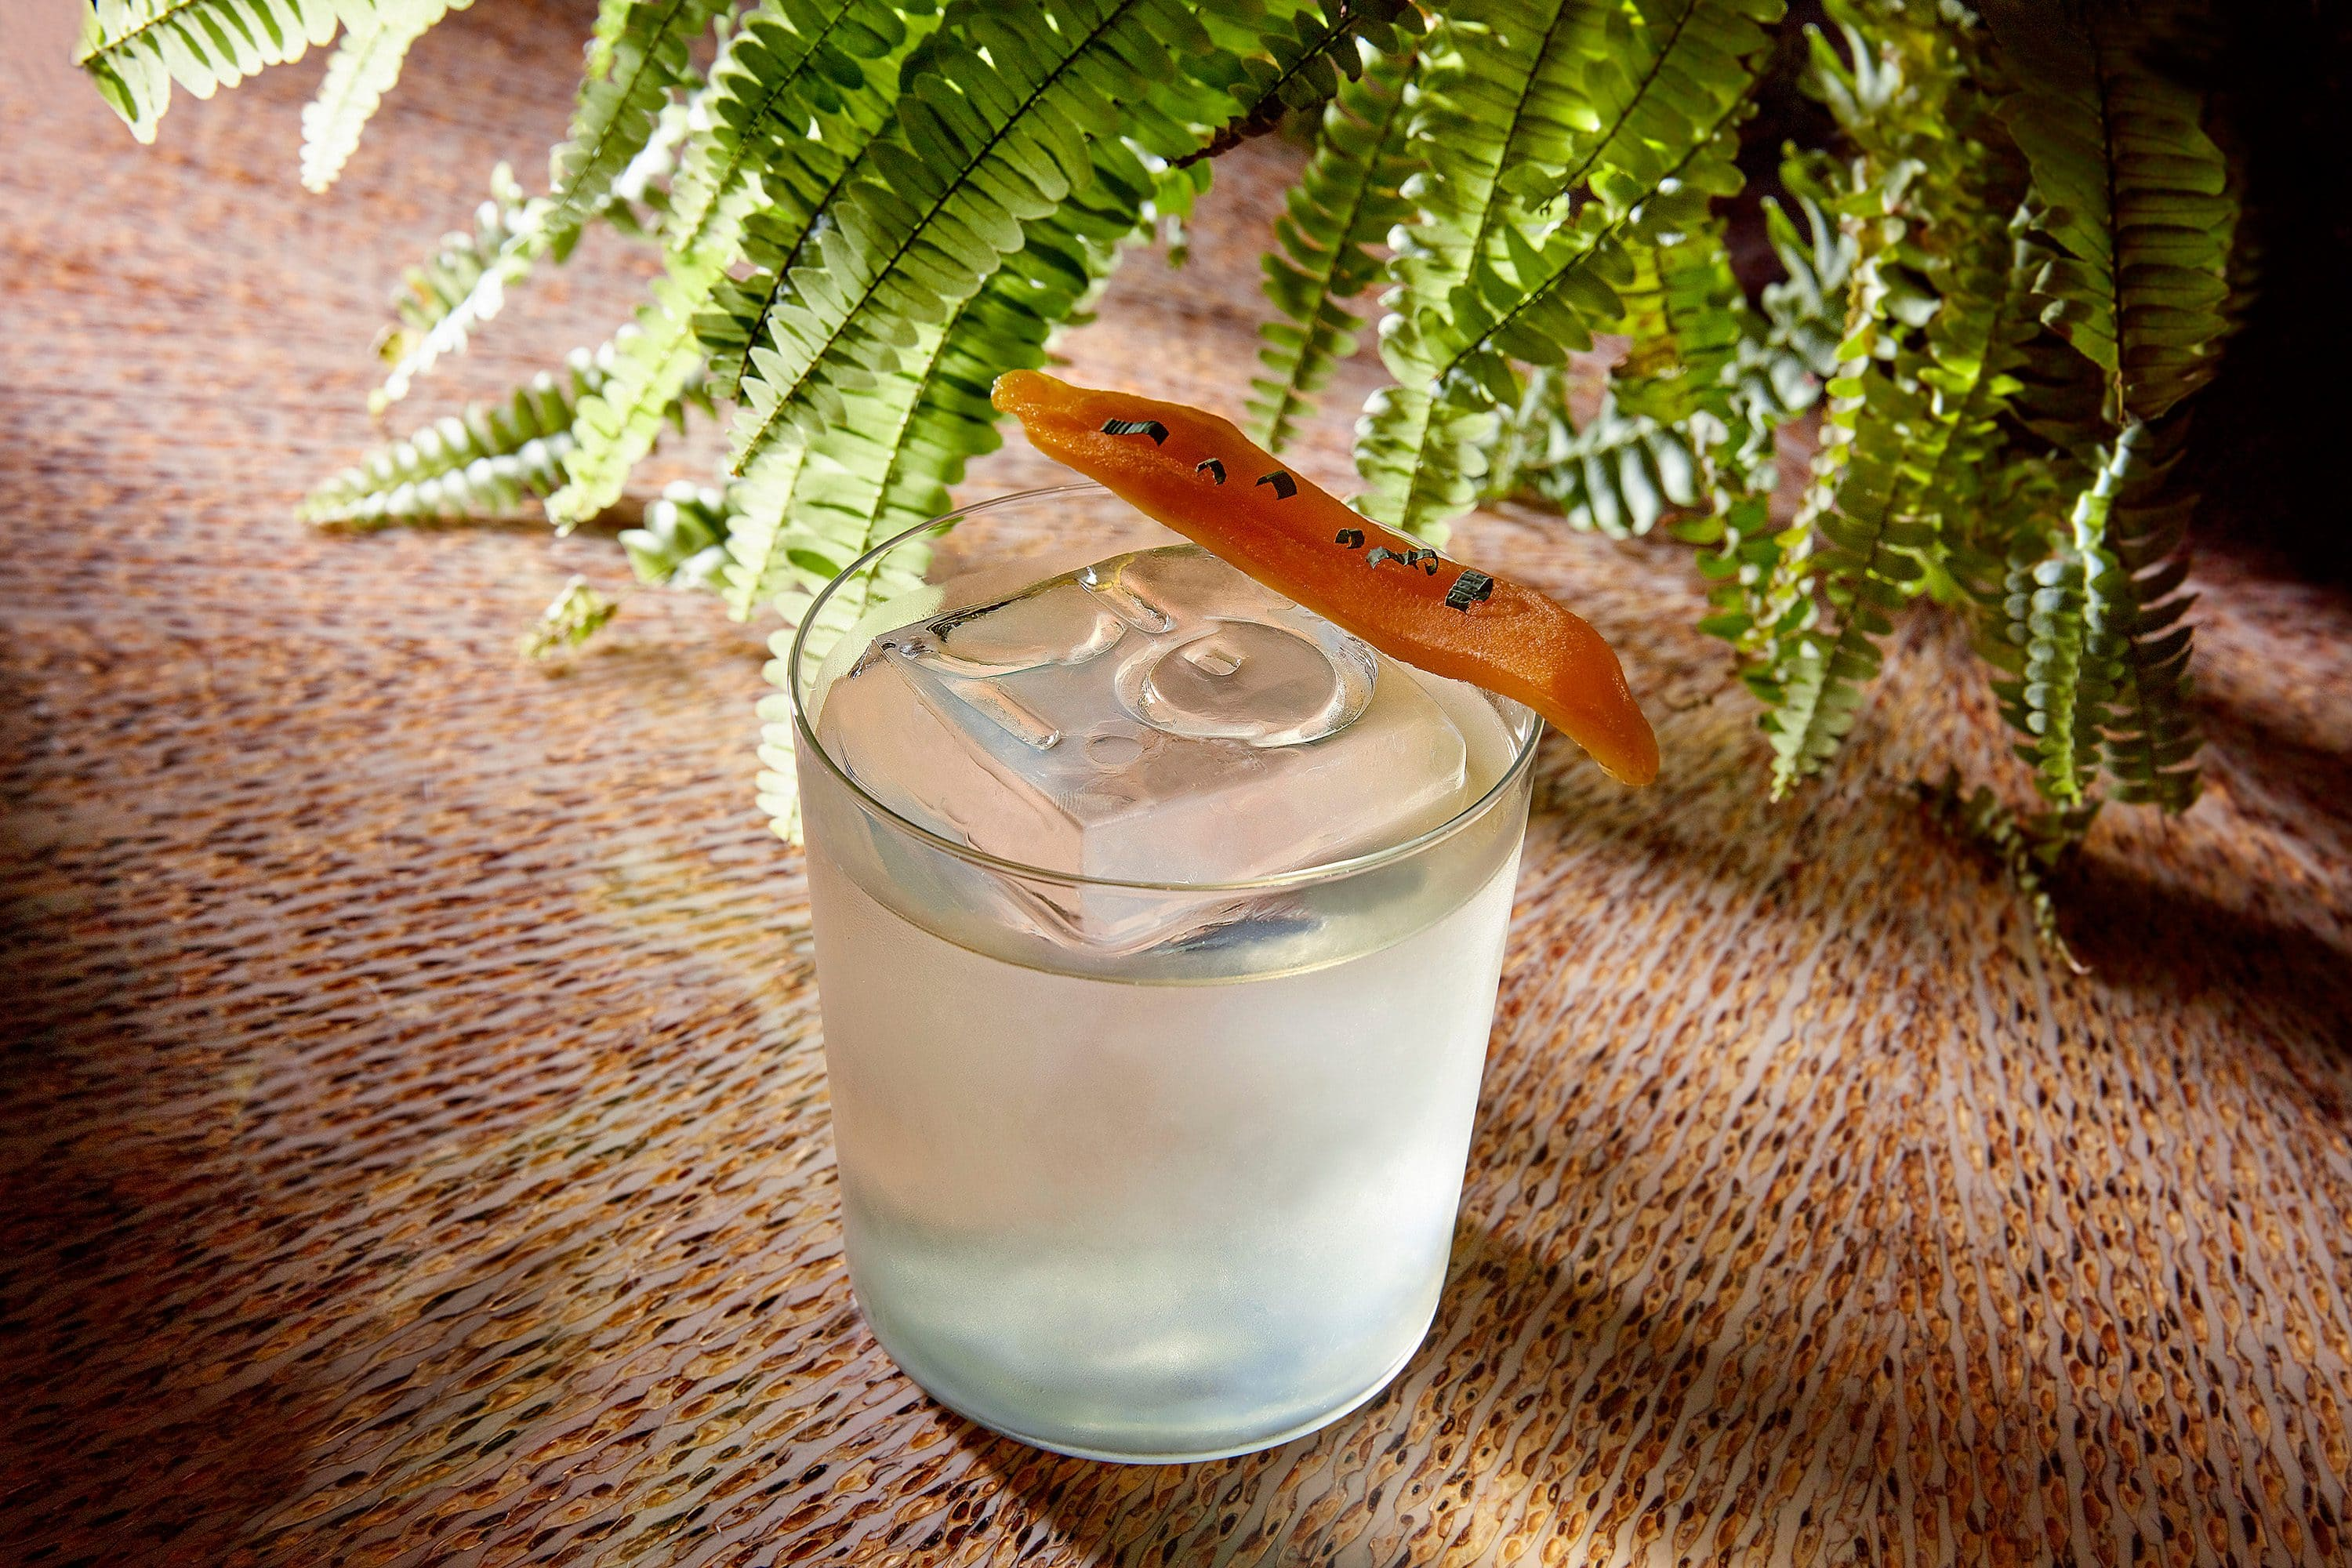 The Oriental cocktail finished with dehydrated mango